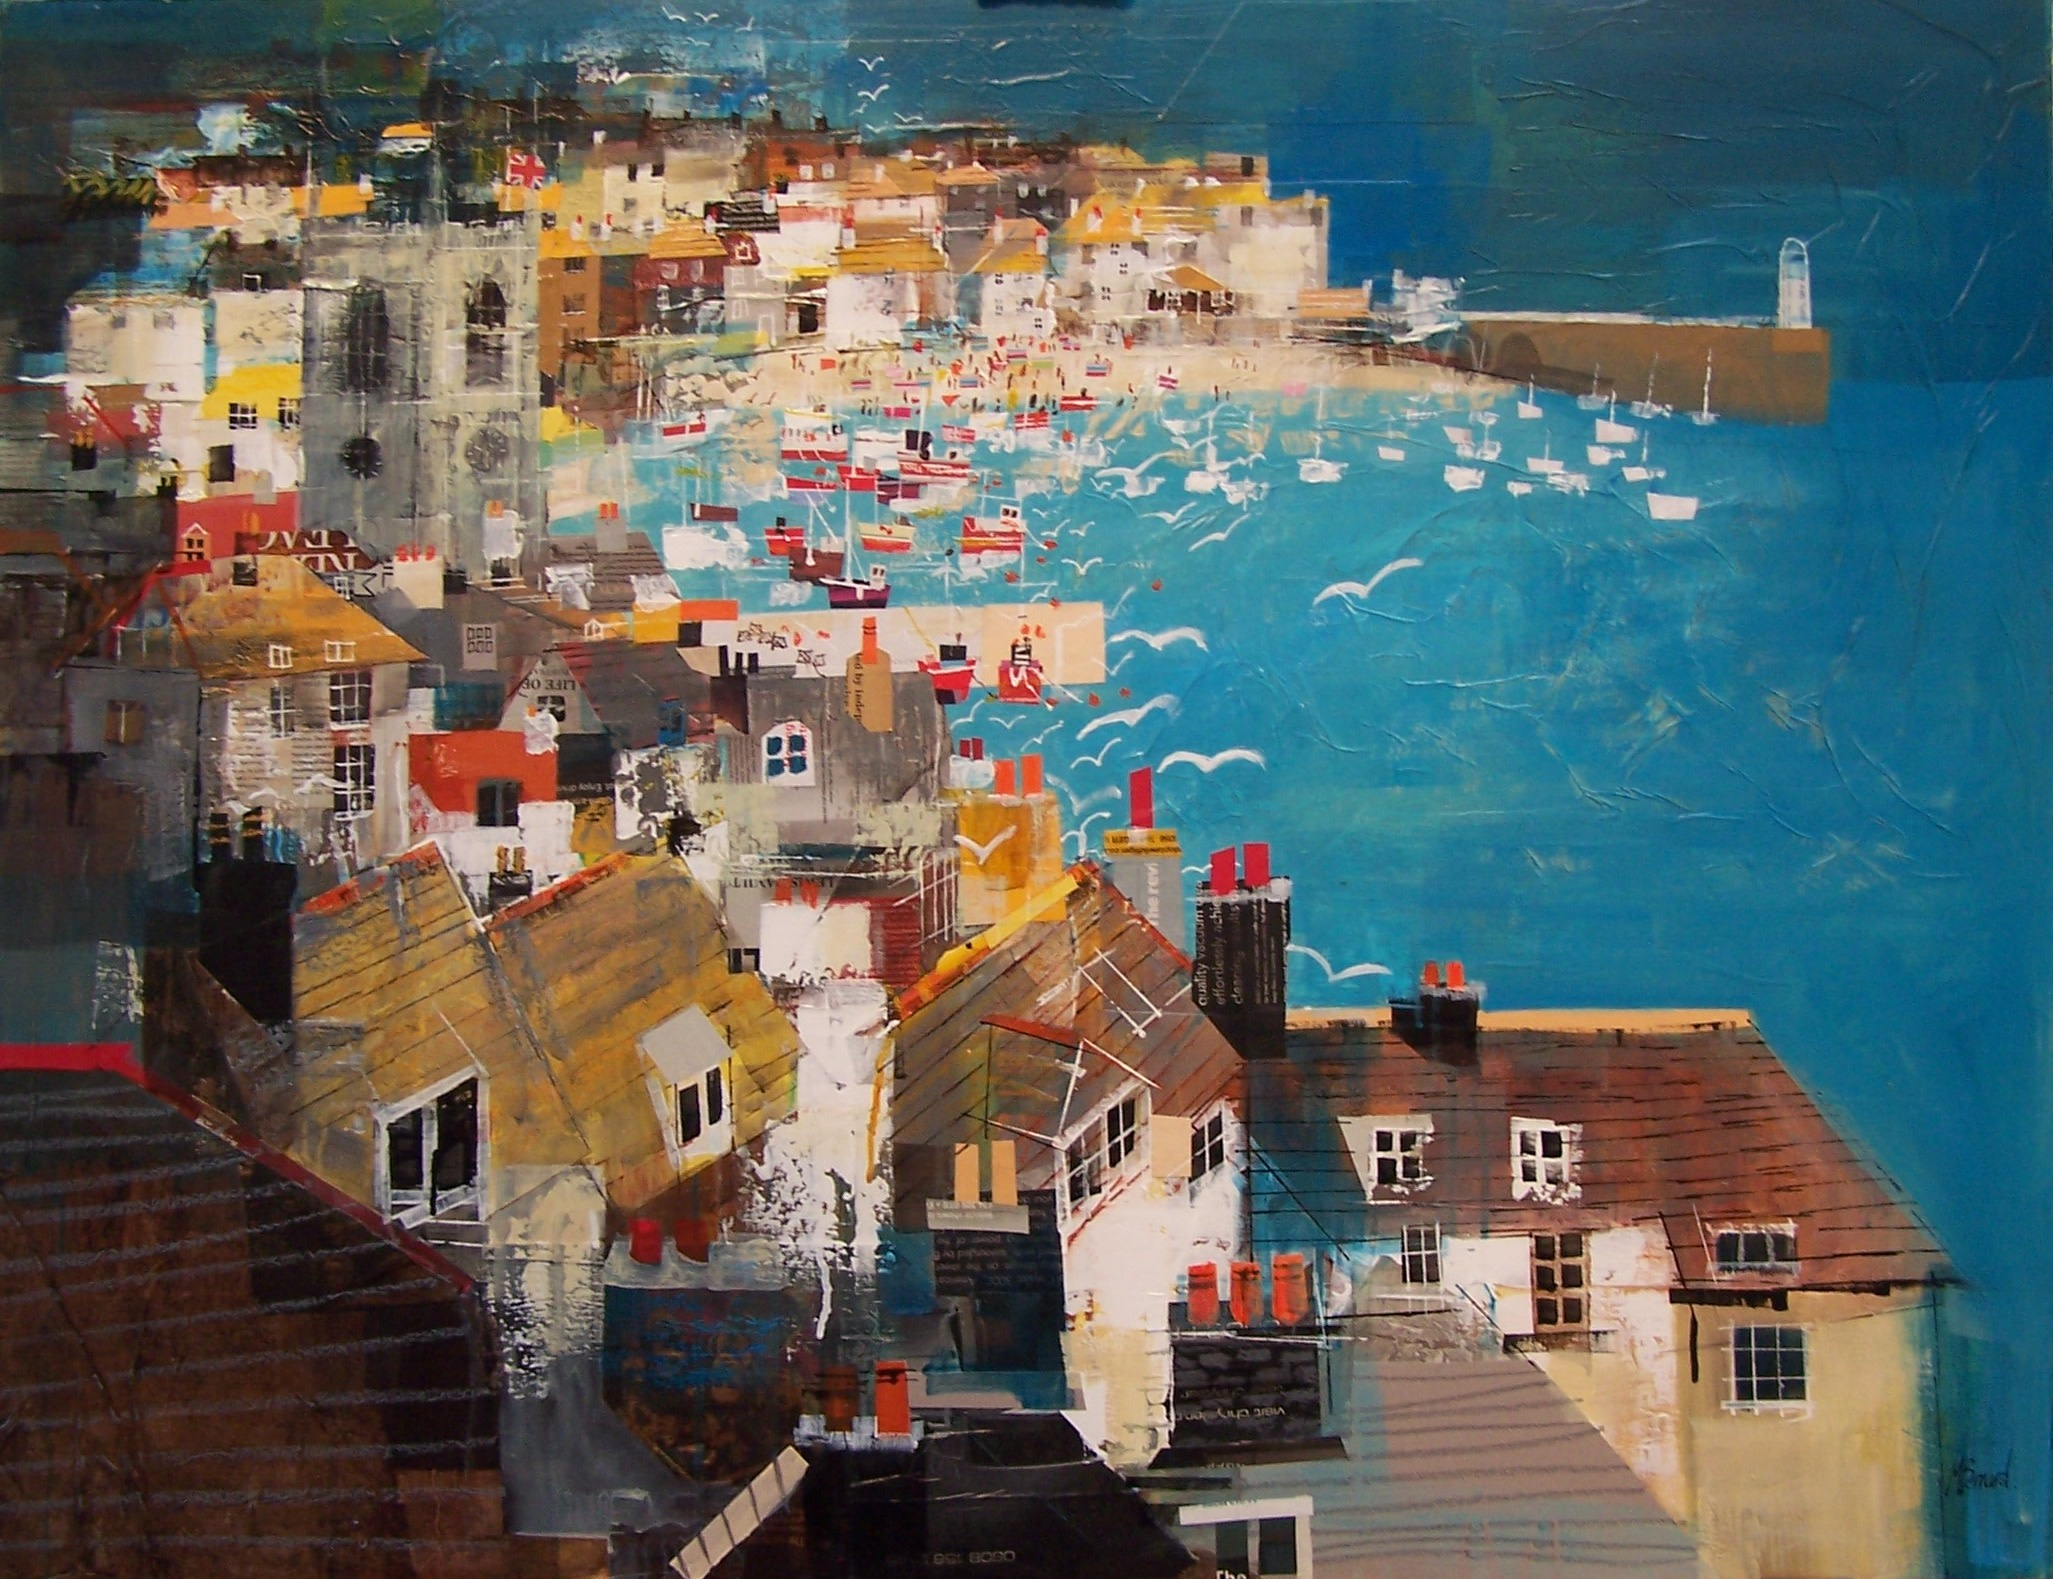 "<span class=""link fancybox-details-link""><a href=""/artists/155-mike-bernard-ri/works/5786-mike-bernard-ri-st-ives-bay-2018/"">View Detail Page</a></span><div class=""artist""><strong>Mike Bernard RI</strong></div> <div class=""title""><em>St Ives Bay</em>, 2018</div> <div class=""signed_and_dated"">signed by the artist</div> <div class=""medium"">Mixed media on canvas</div> <div class=""dimensions"">86.4 x 111.8 cm<br /> 34 x 44 inches</div>"